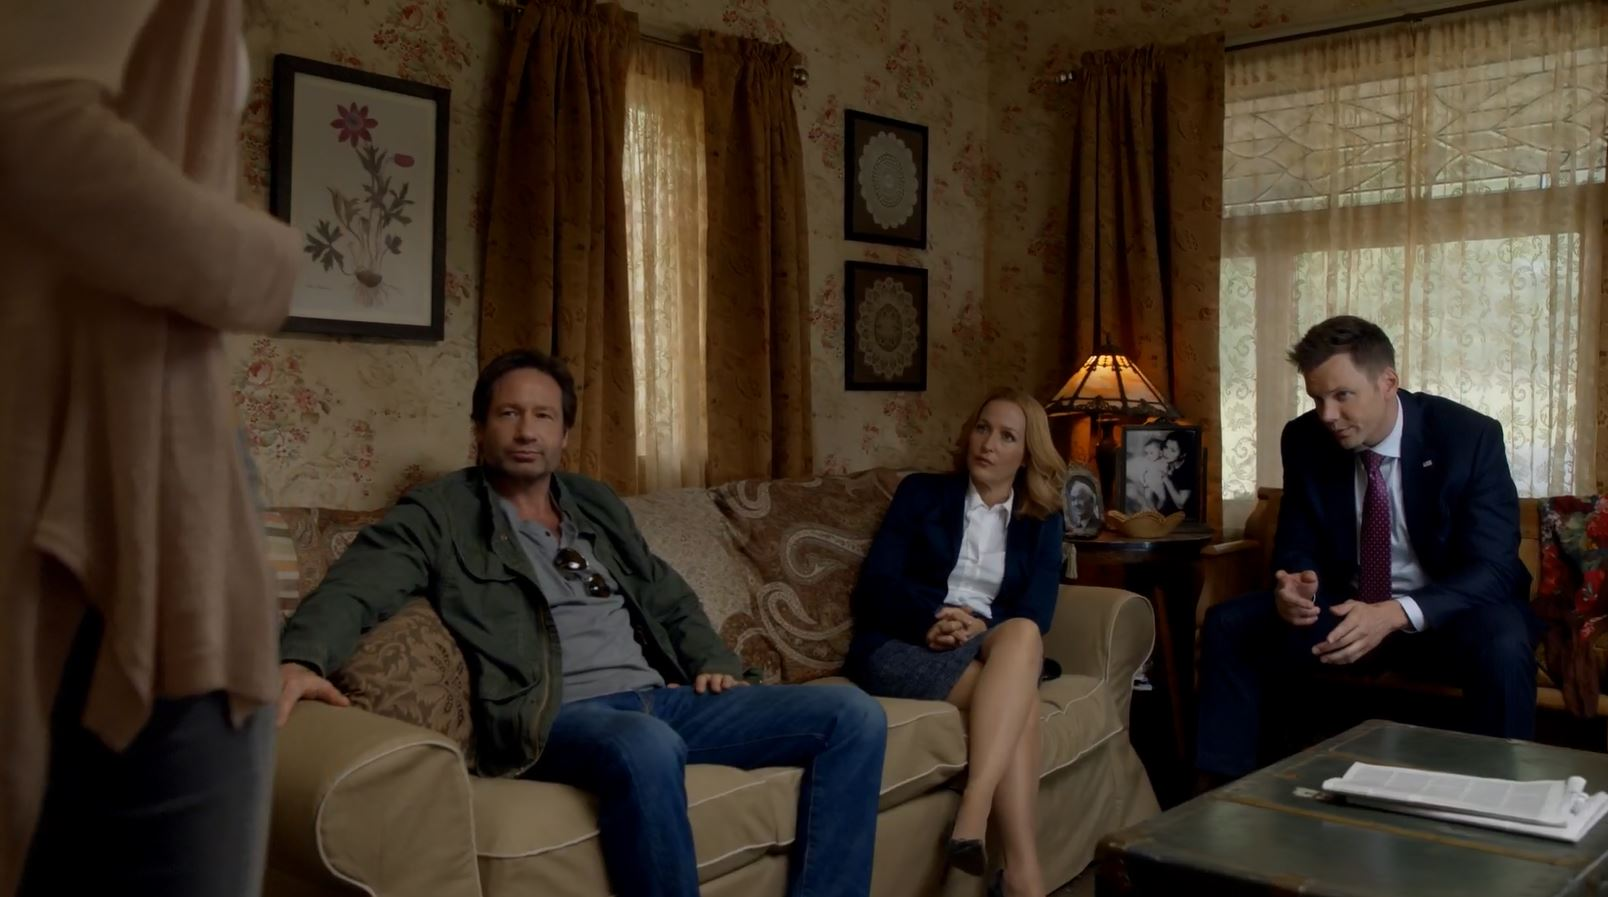 Mulder, Scully and Tad question Sveta. The X-Files (miniseries) My Struggle Review